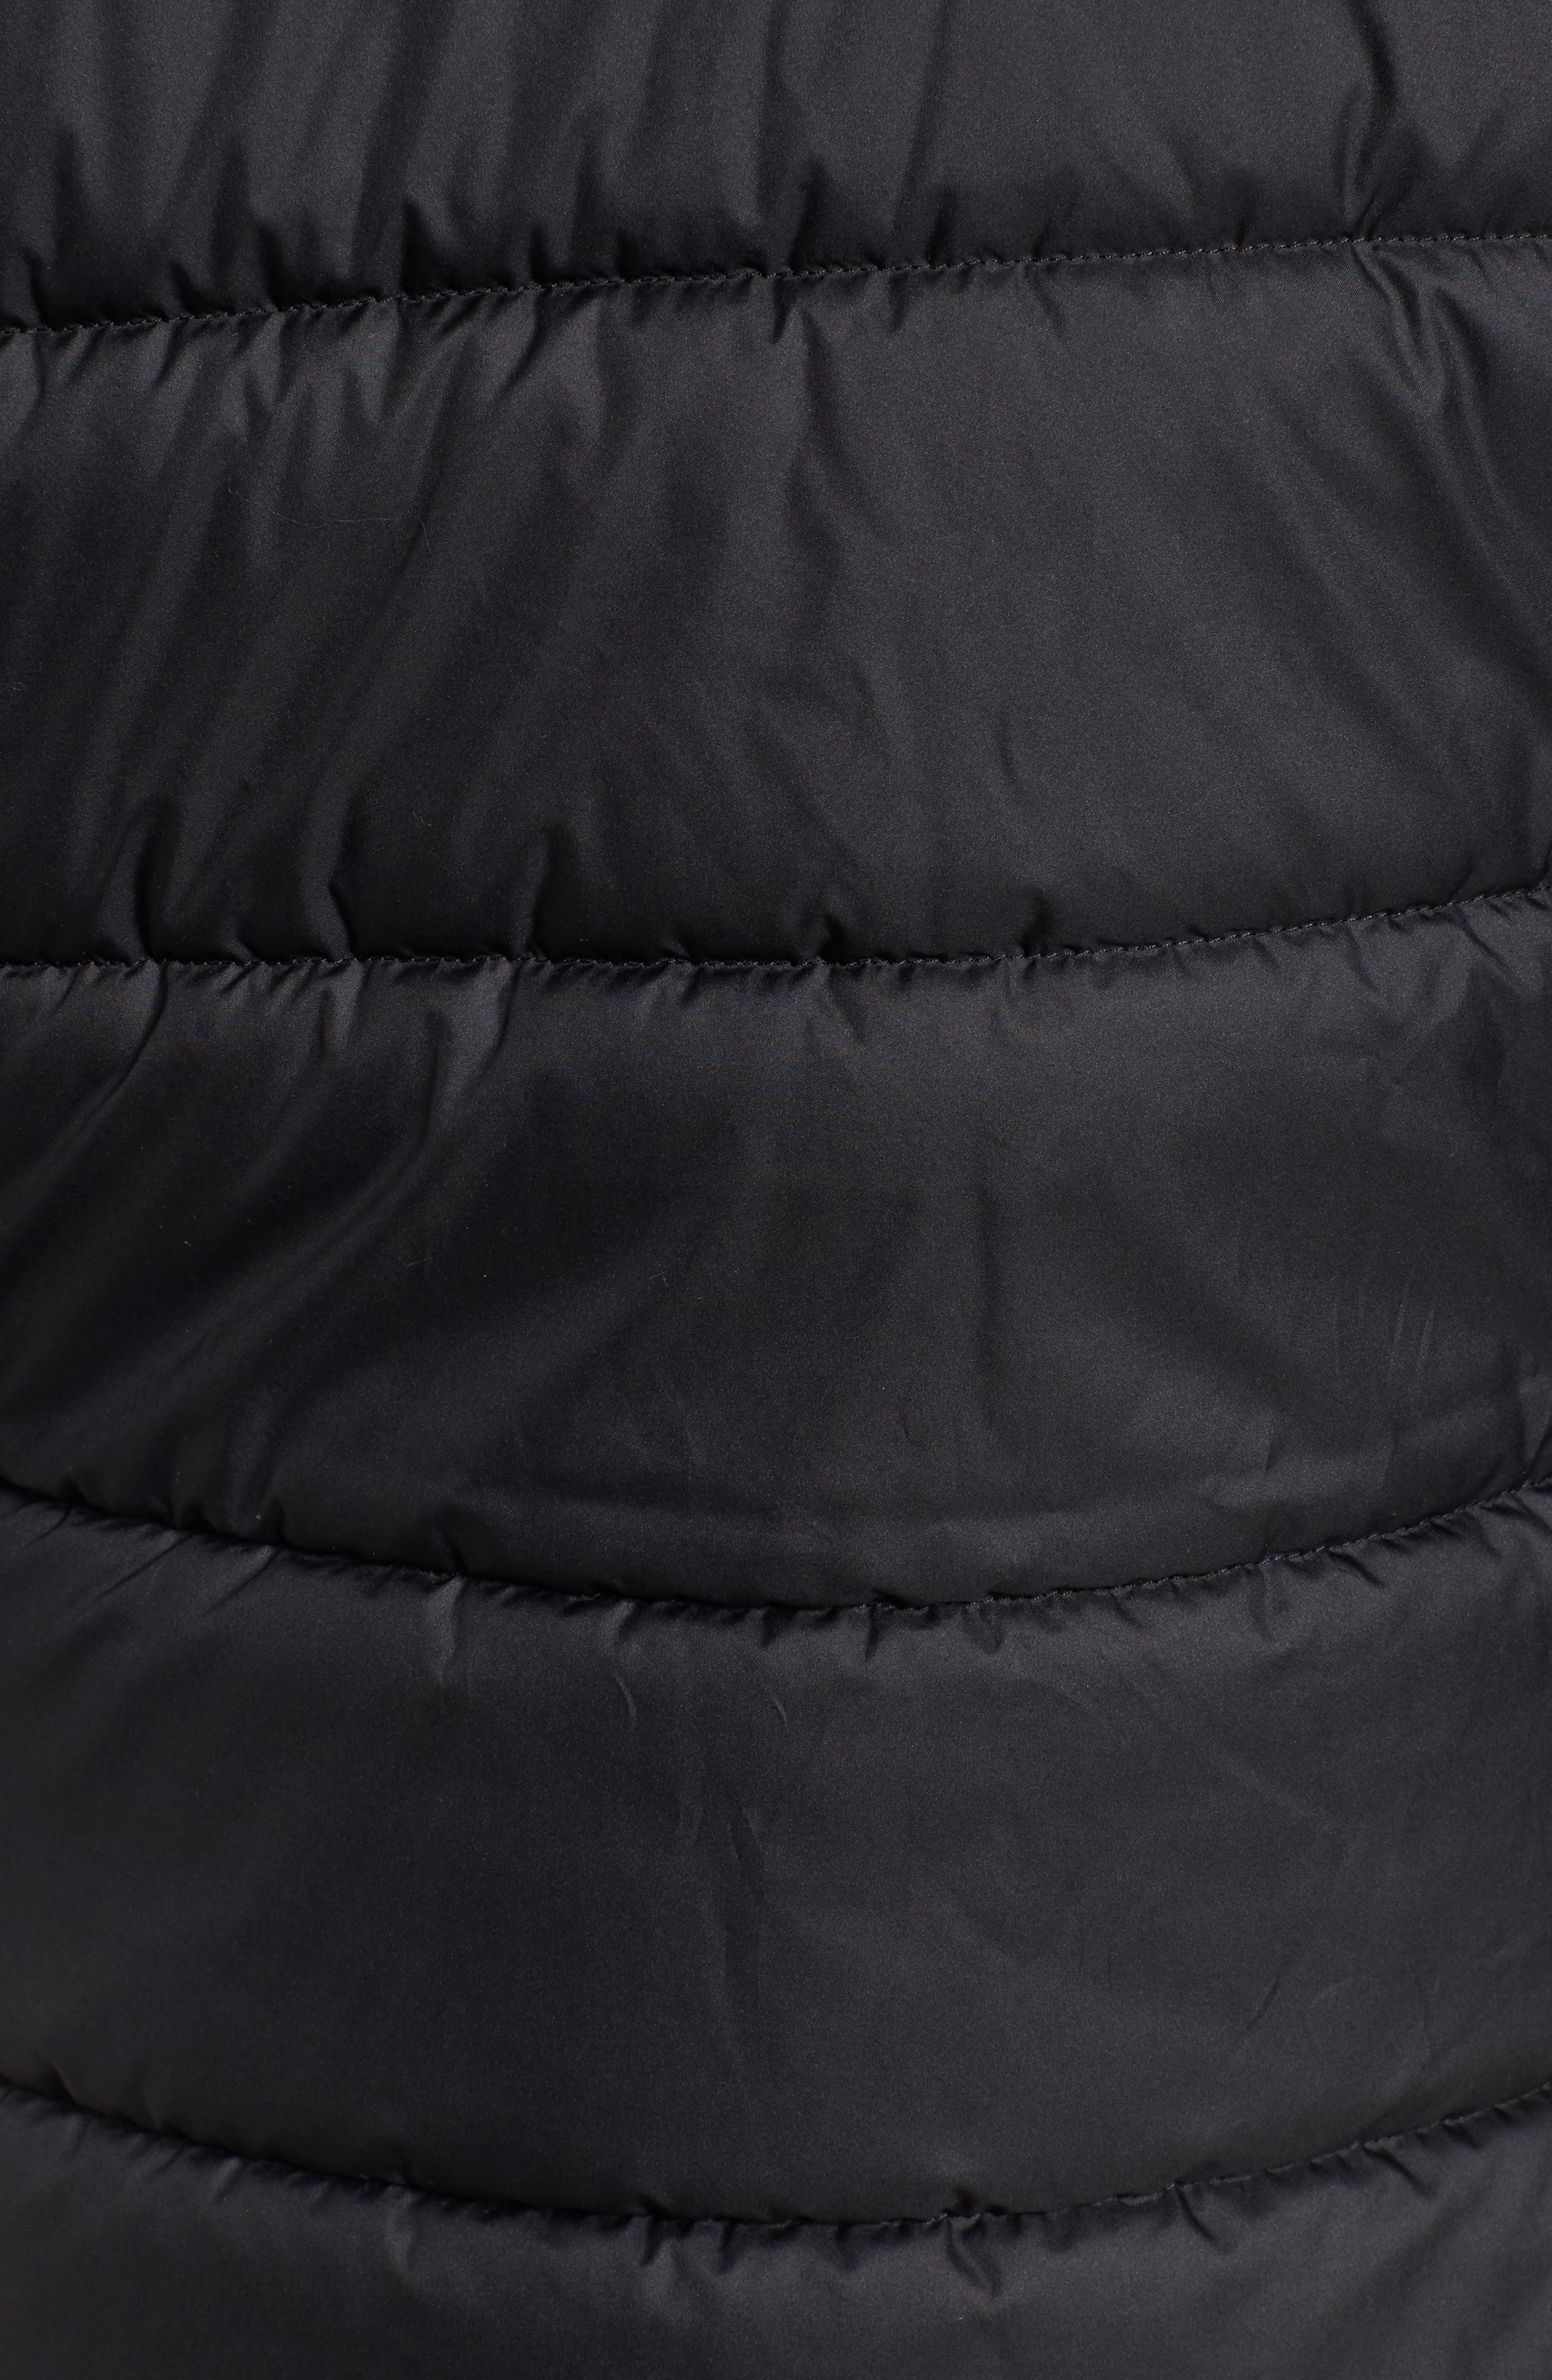 Transitional HyperDAS<sup>™</sup> Insulated Jacket,                             Alternate thumbnail 7, color,                             001